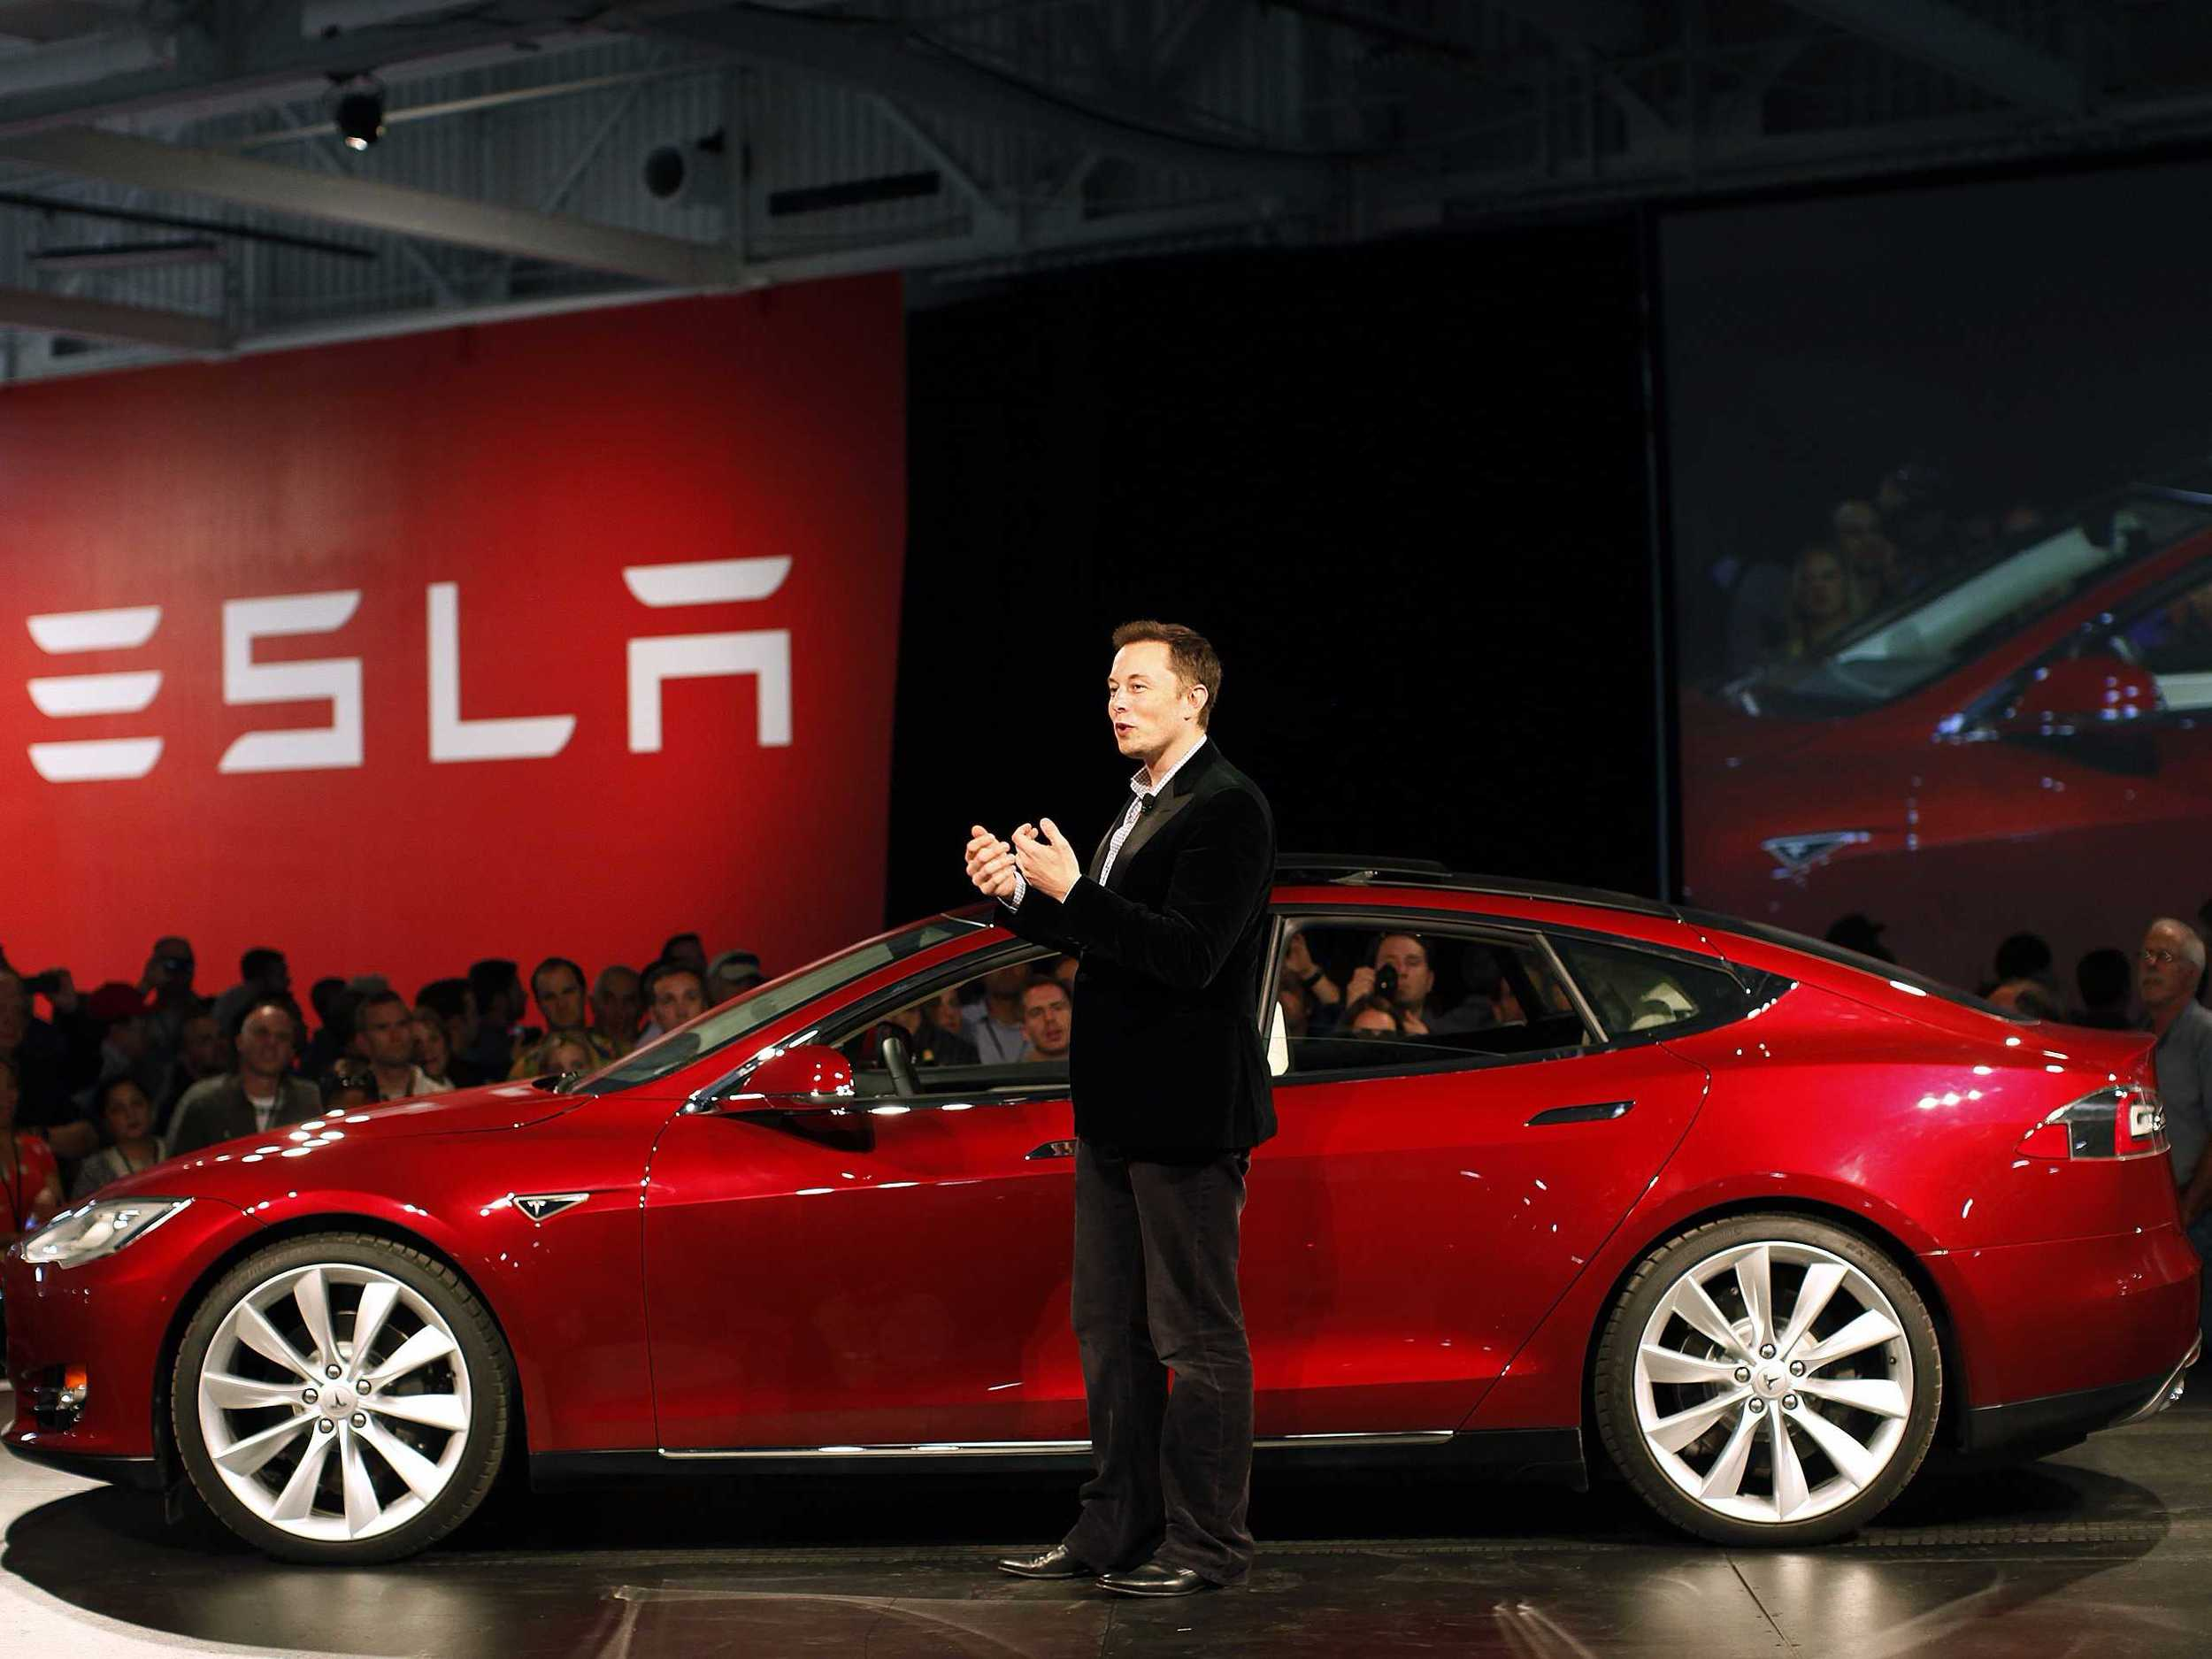 will-tesla-be-able-to-get-the-model-3-into-production-on-schedule.jpg